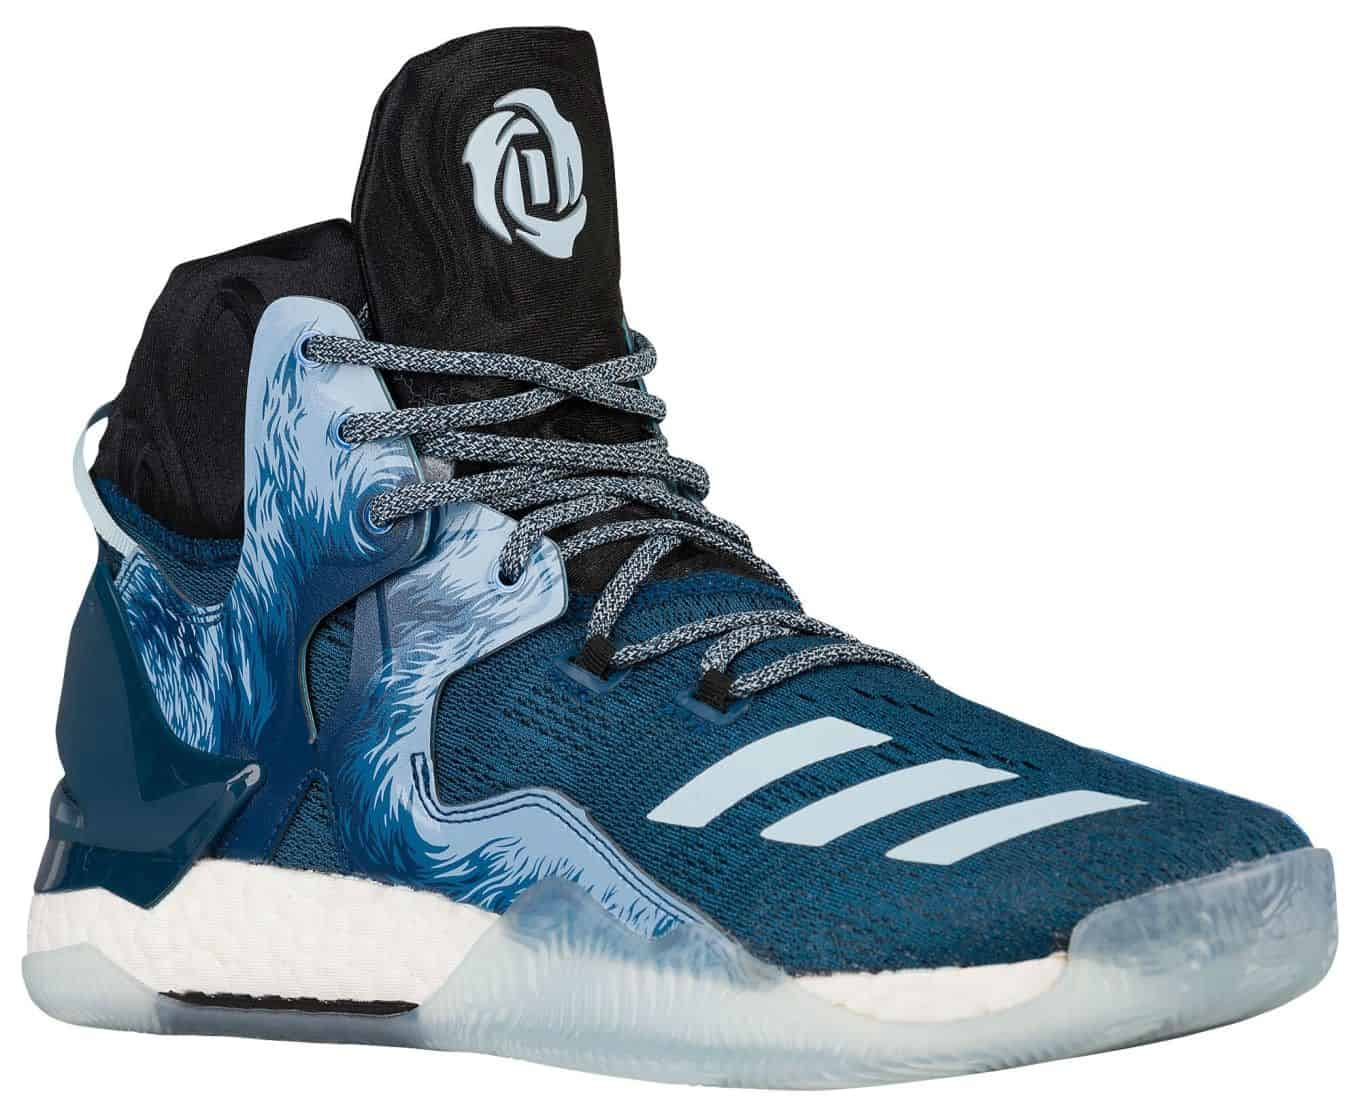 amazon Adidas D Rose 7 reviews Adidas D Rose 7 on amazon newest Adidas D Rose 7 prices of Adidas D Rose 7 Adidas D Rose 7 deals best deals on Adidas D Rose 7 buying a Adidas D Rose 7 lastest Adidas D Rose 7 what is a Adidas D Rose 7 Adidas D Rose 7 at amazon where to buy Adidas D Rose 7 where can i you get a Adidas D Rose 7 online purchase Adidas D Rose 7 Adidas D Rose 7 sale off Adidas D Rose 7 discount cheapest Adidas D Rose 7 Adidas D Rose 7 for sale Adidas D Rose 7 products Adidas D Rose 7 tutorial Adidas D Rose 7 specification Adidas D Rose 7 features Adidas D Rose 7 test Adidas D Rose 7 series Adidas D Rose 7 service manual Adidas D Rose 7 instructions Adidas D Rose 7 accessories